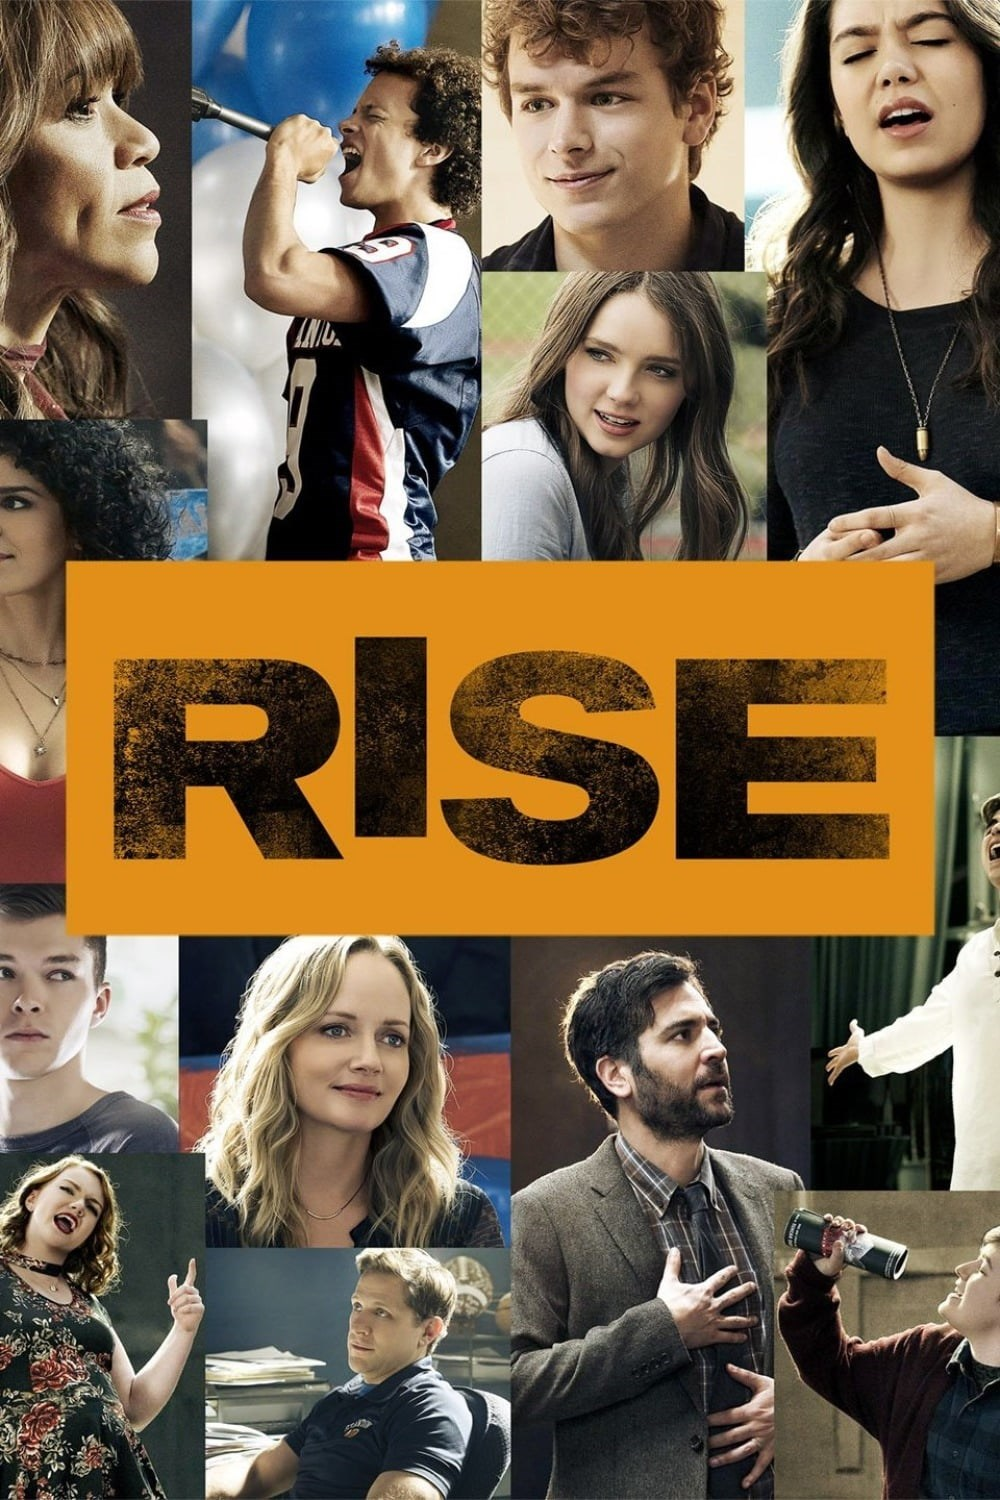 Subscene - Subtitles for Rise - First Season